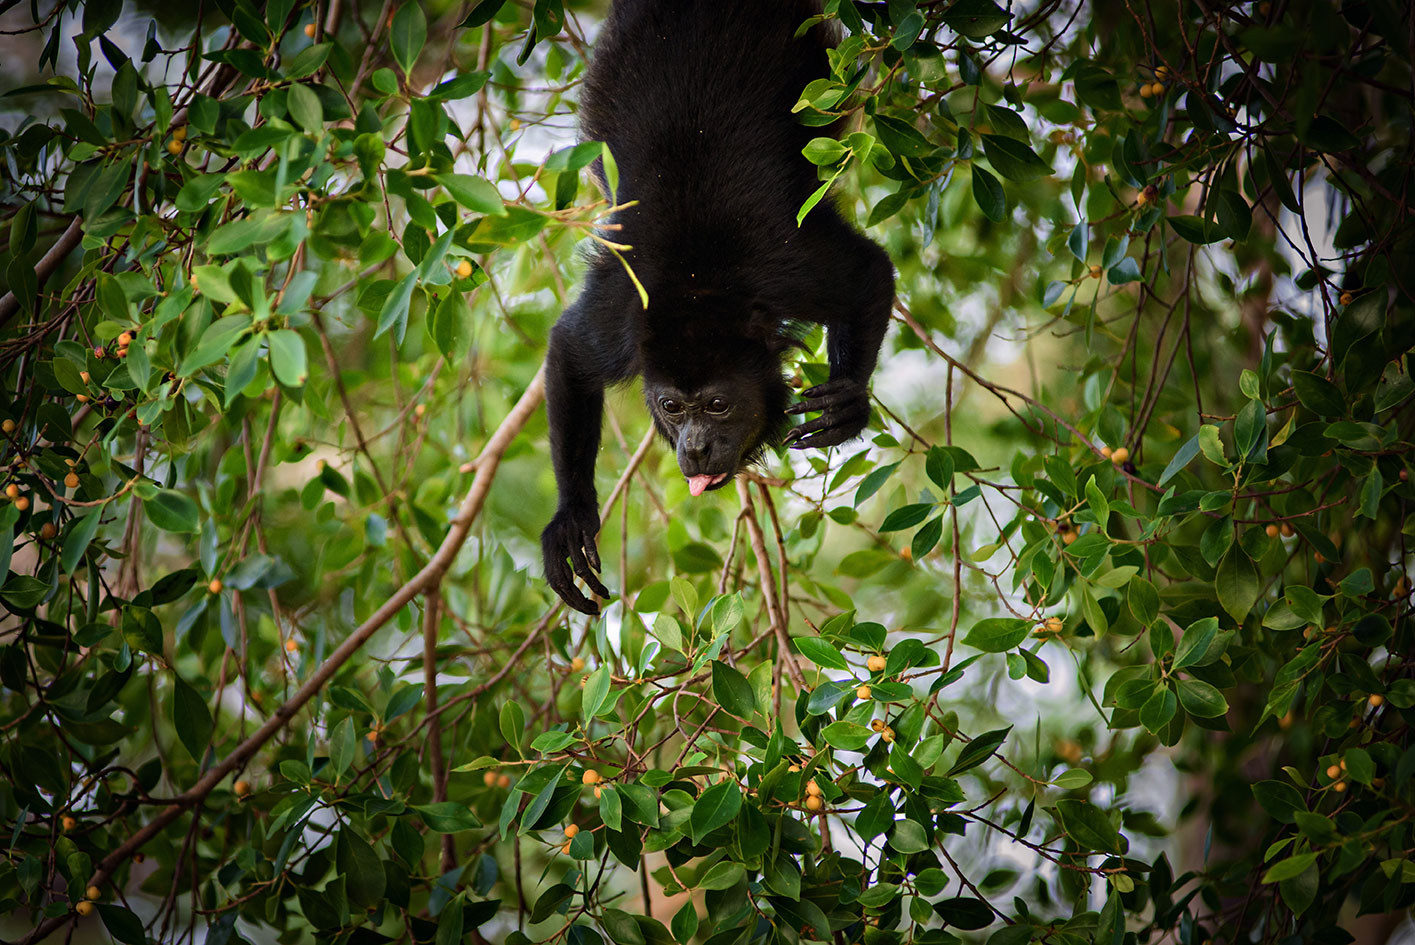 Monkey Manuel Antonio Costa Rica Photo: Christina Craft